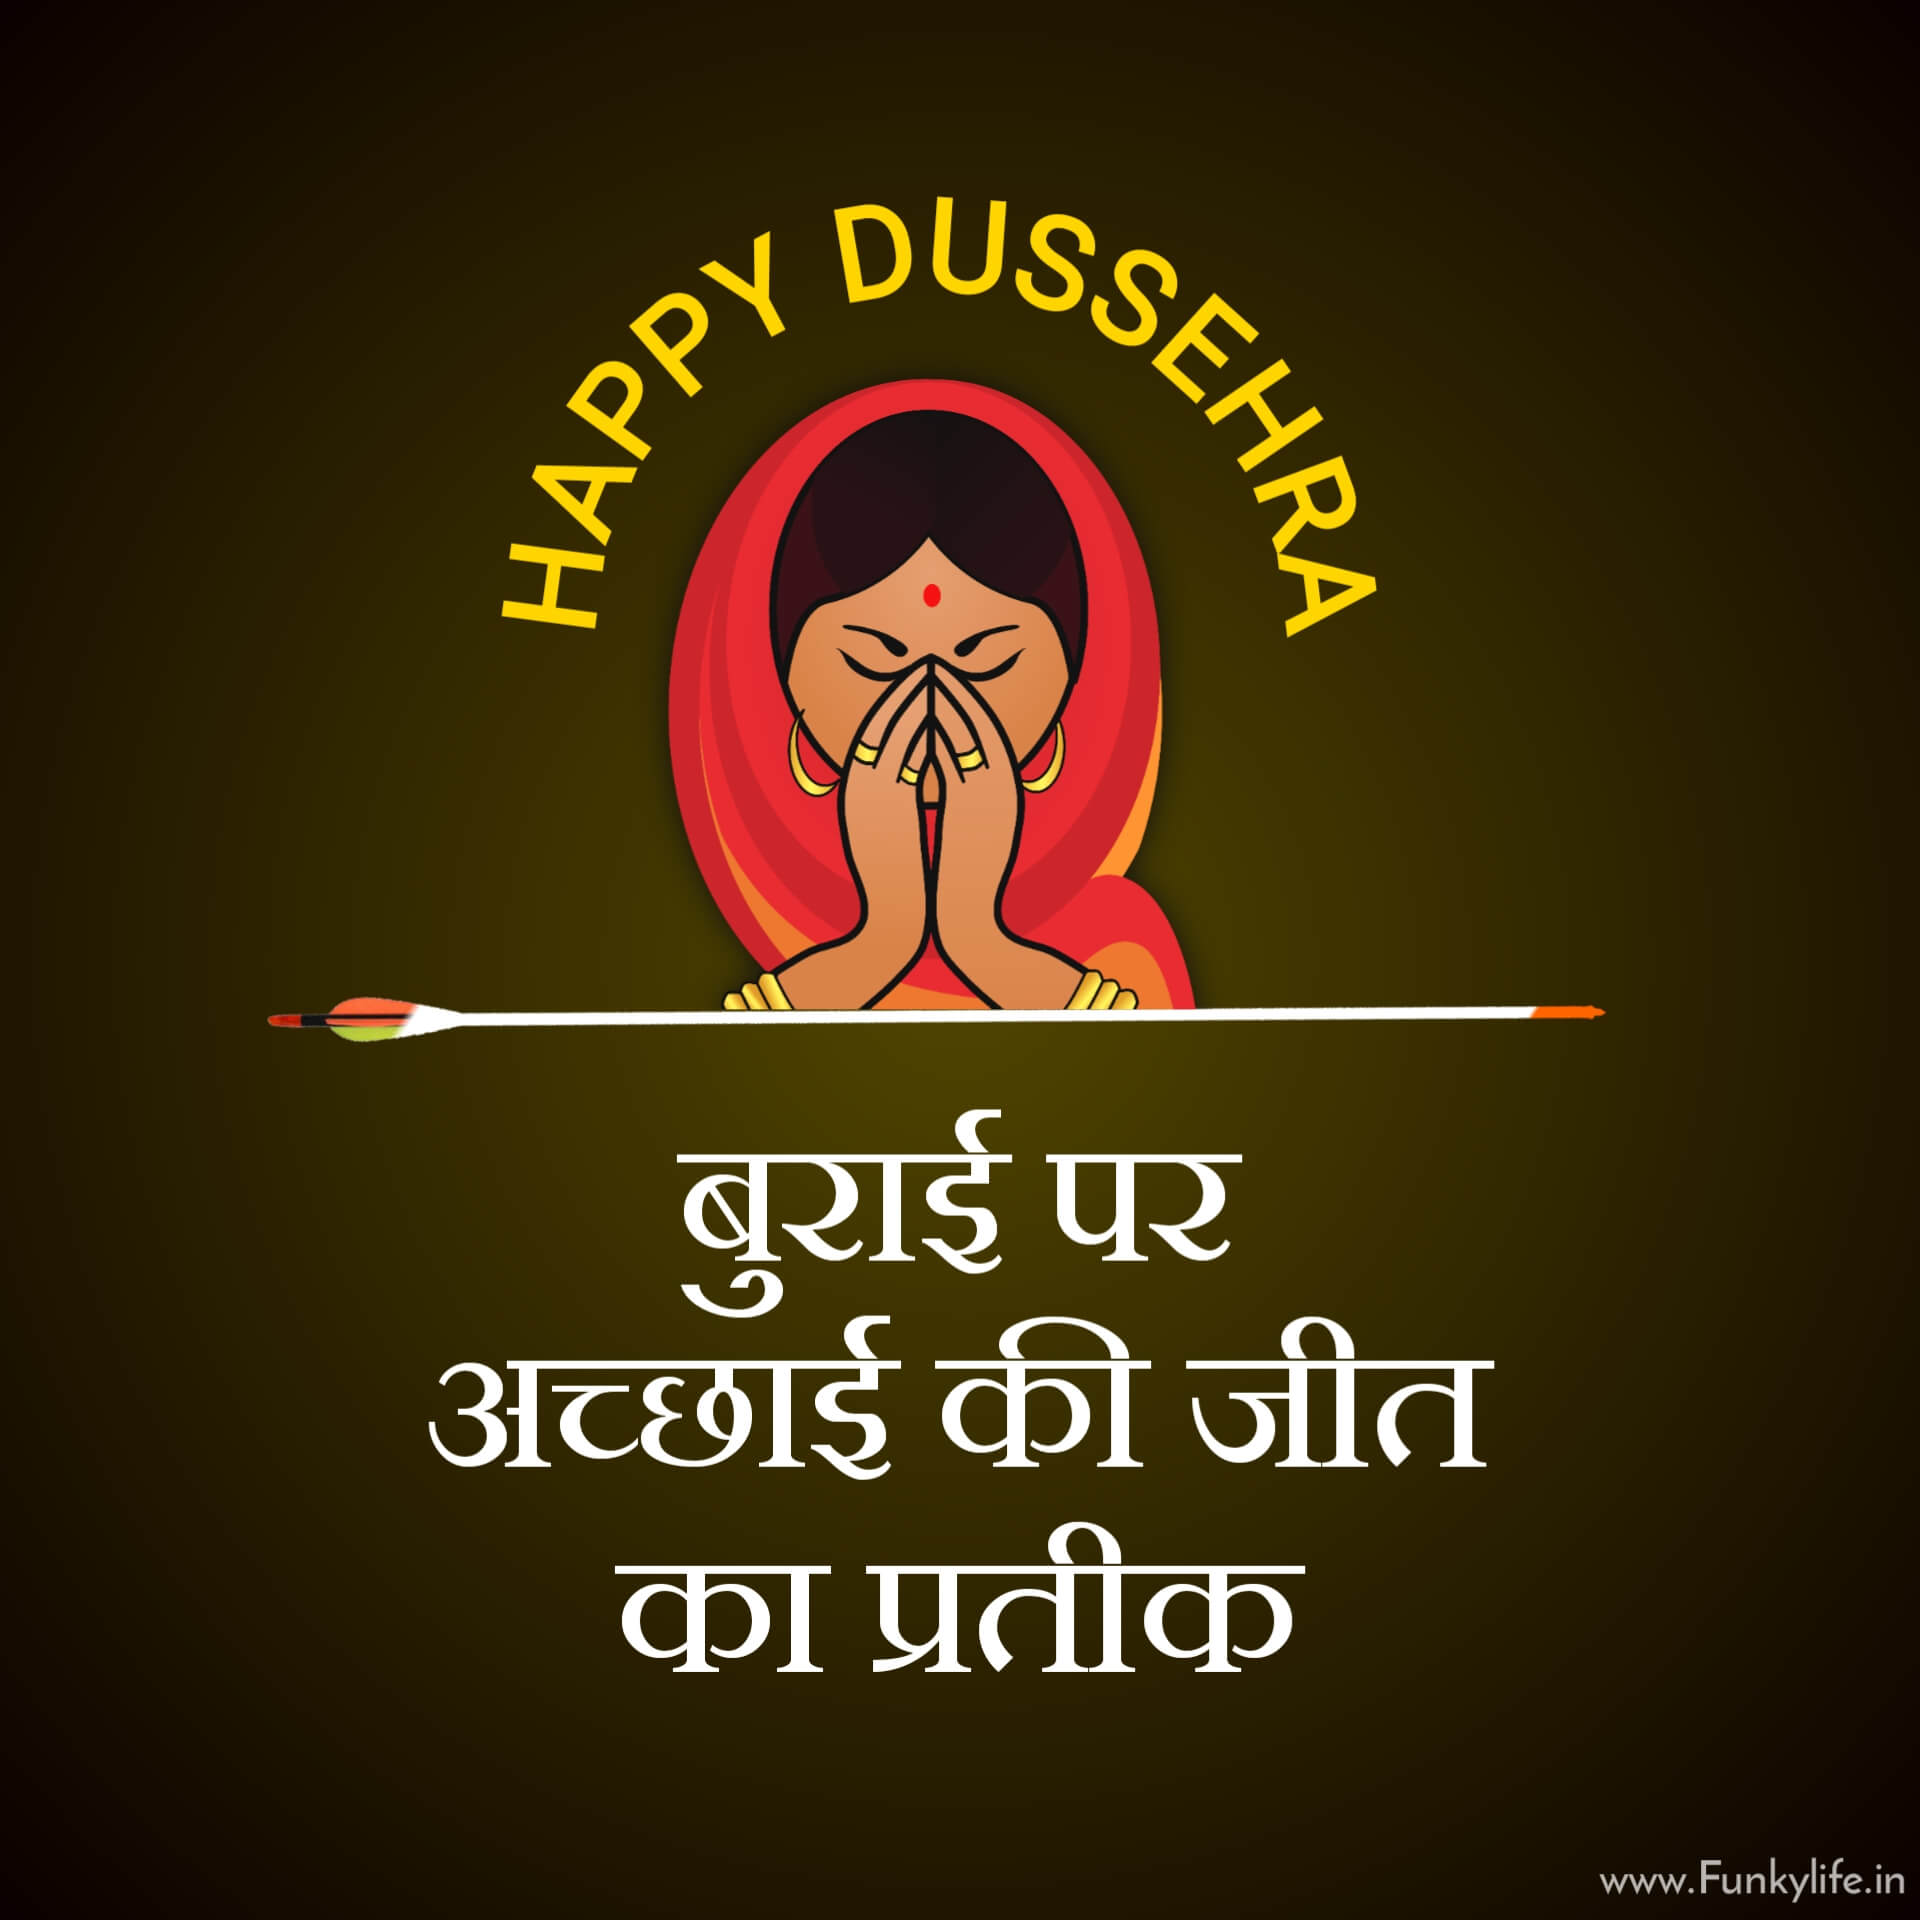 Dussehra wishes in Hindi Message